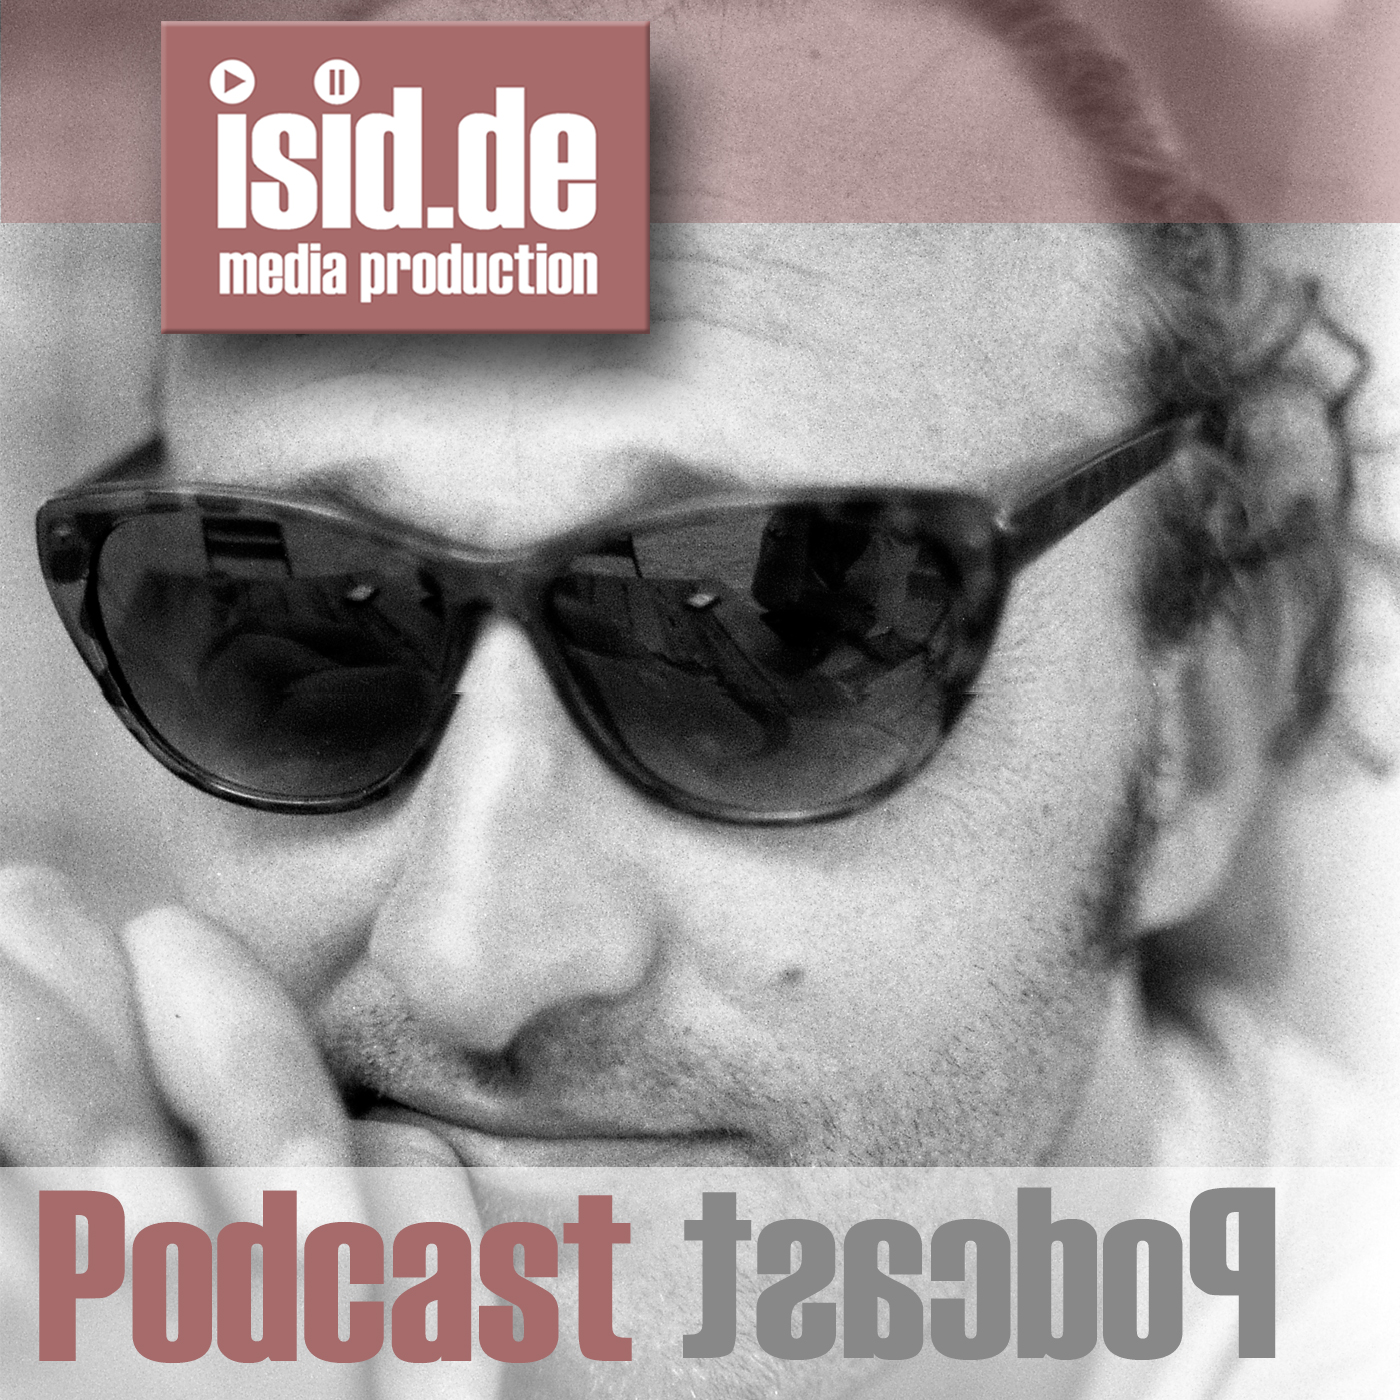 isid.de - media production, Matthias Ernst Holzmann - Podcast